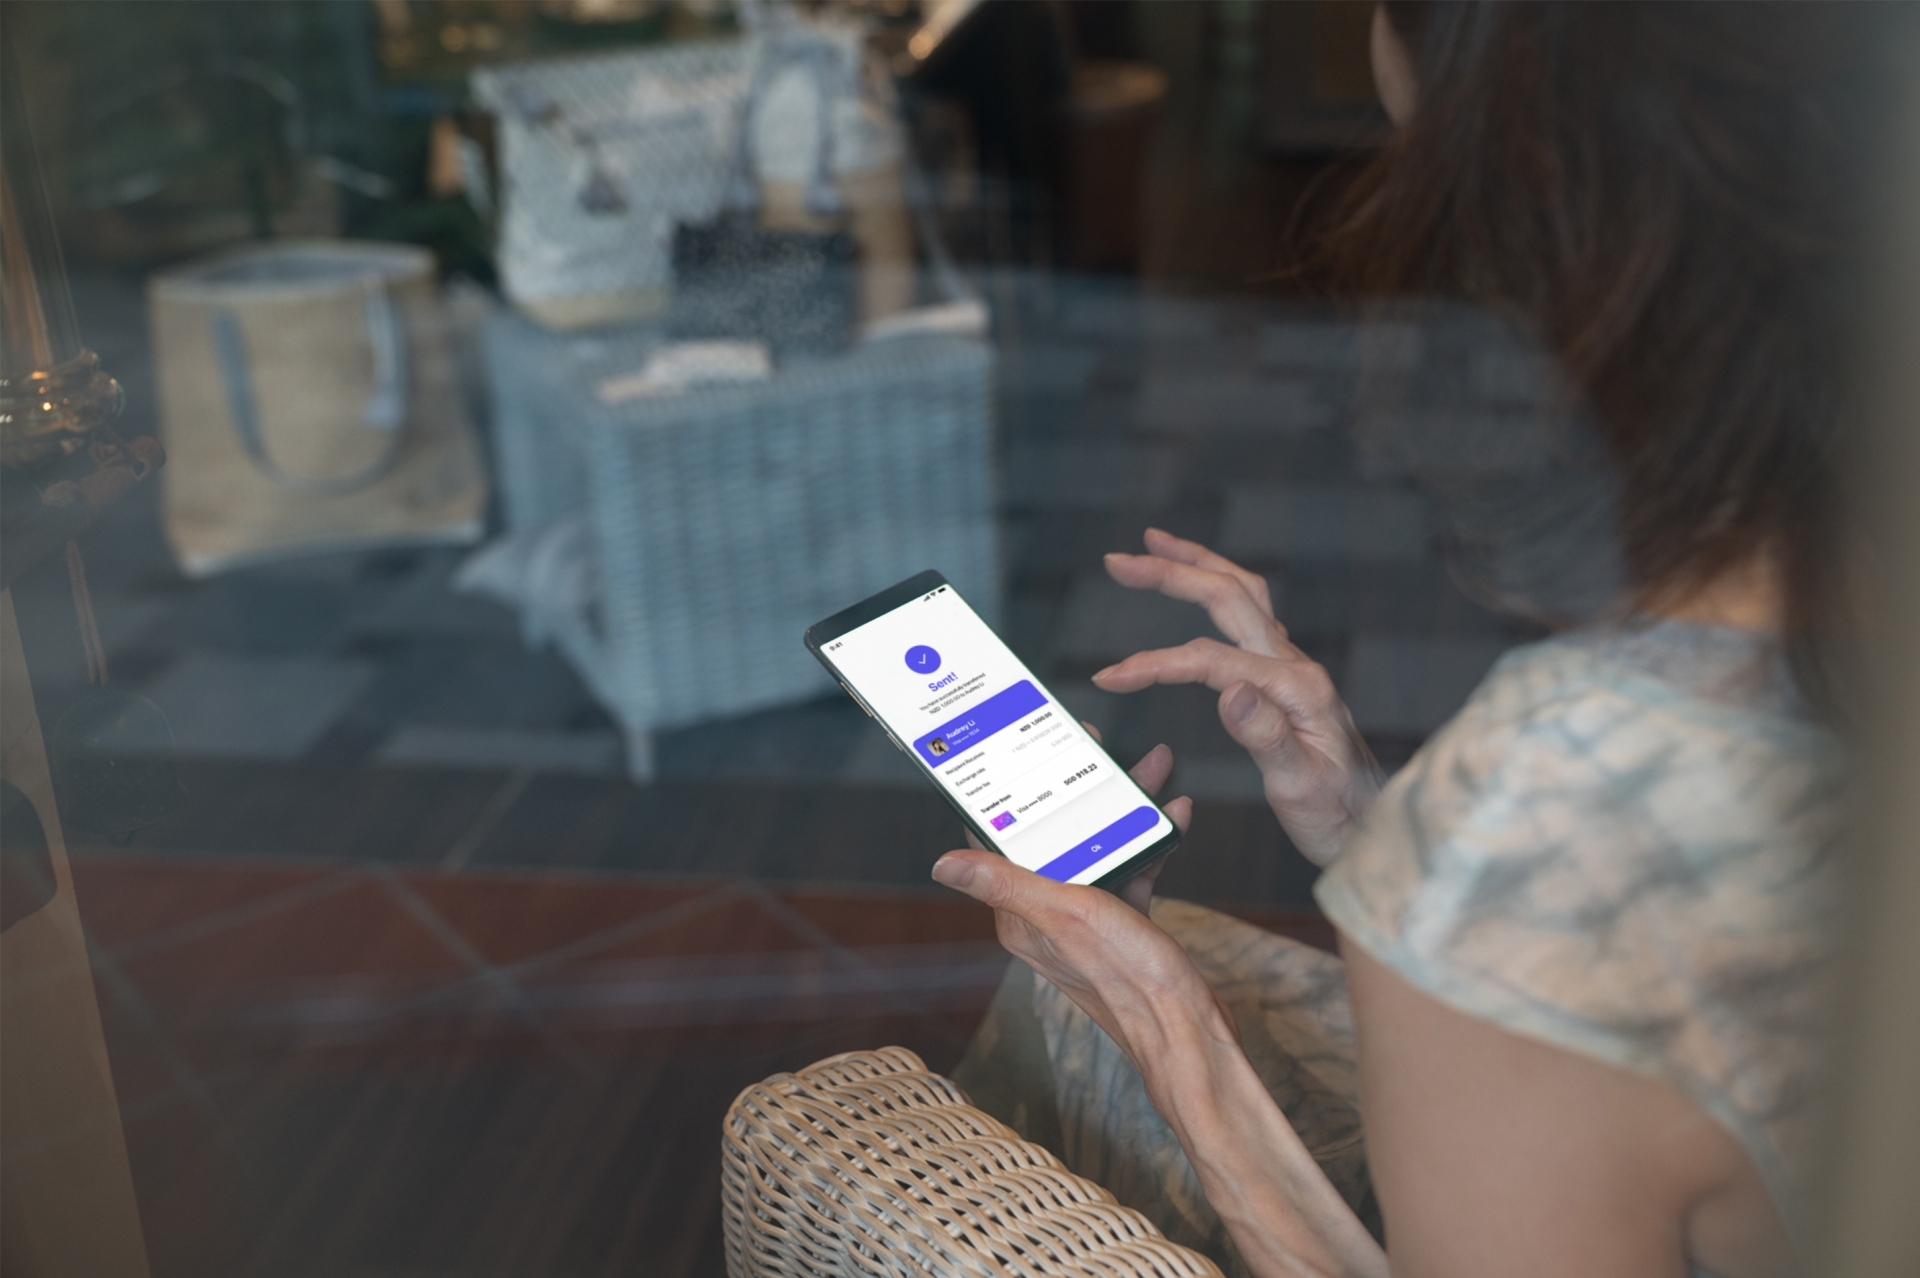 Visa study uncovers untapped opportunity for smartphone payments in Asia-Pacific